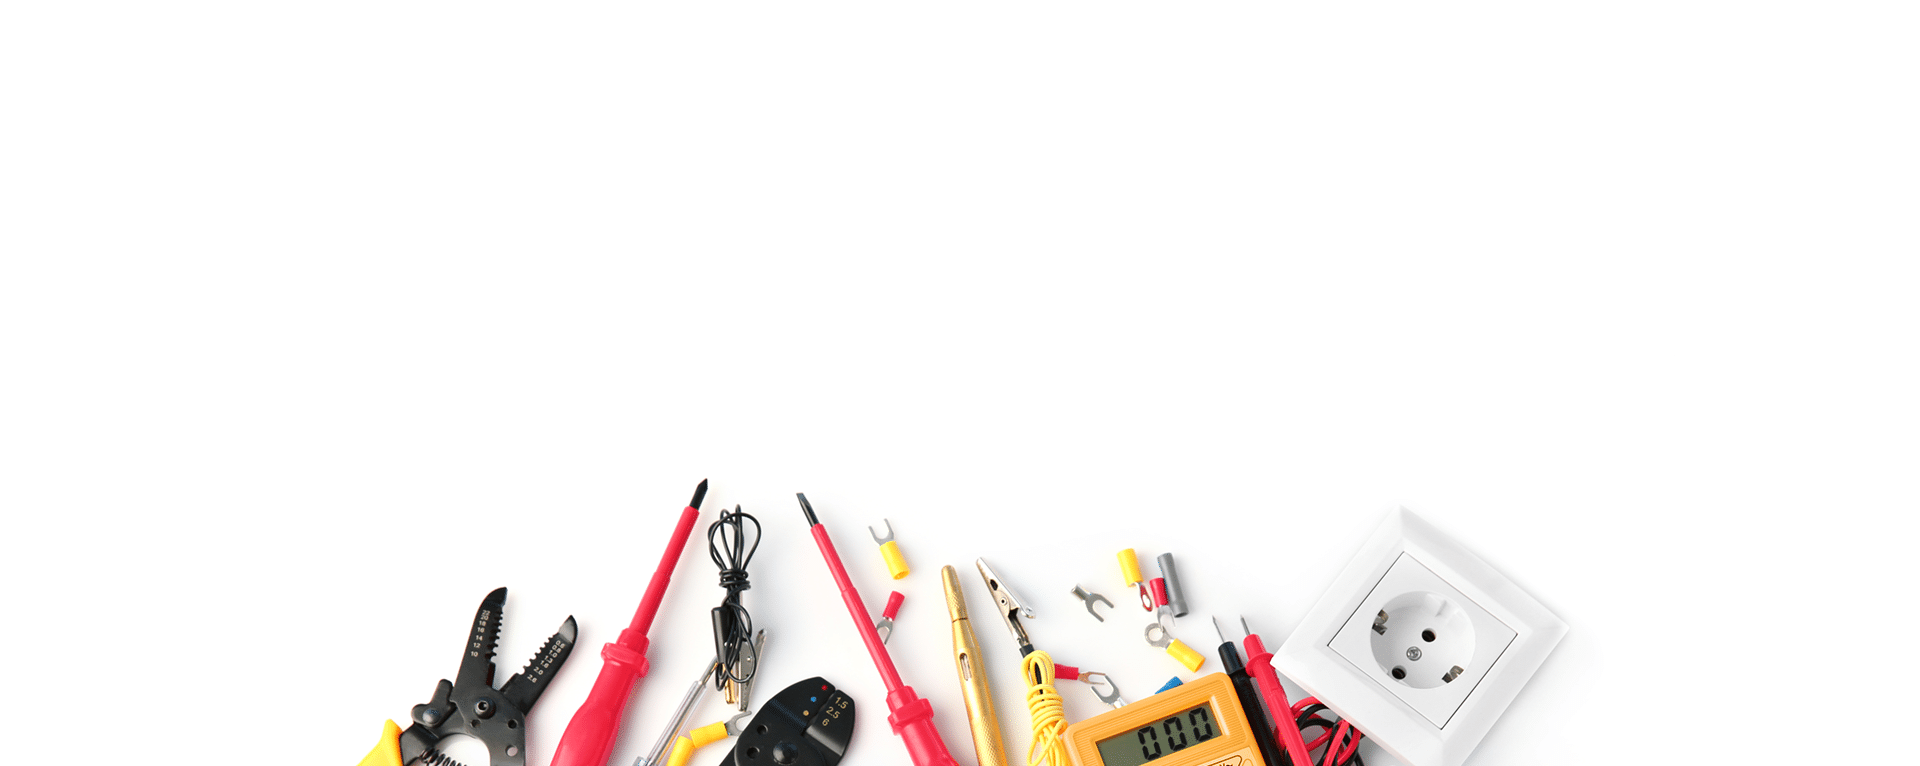 Business Service and repairs Brisbane tools